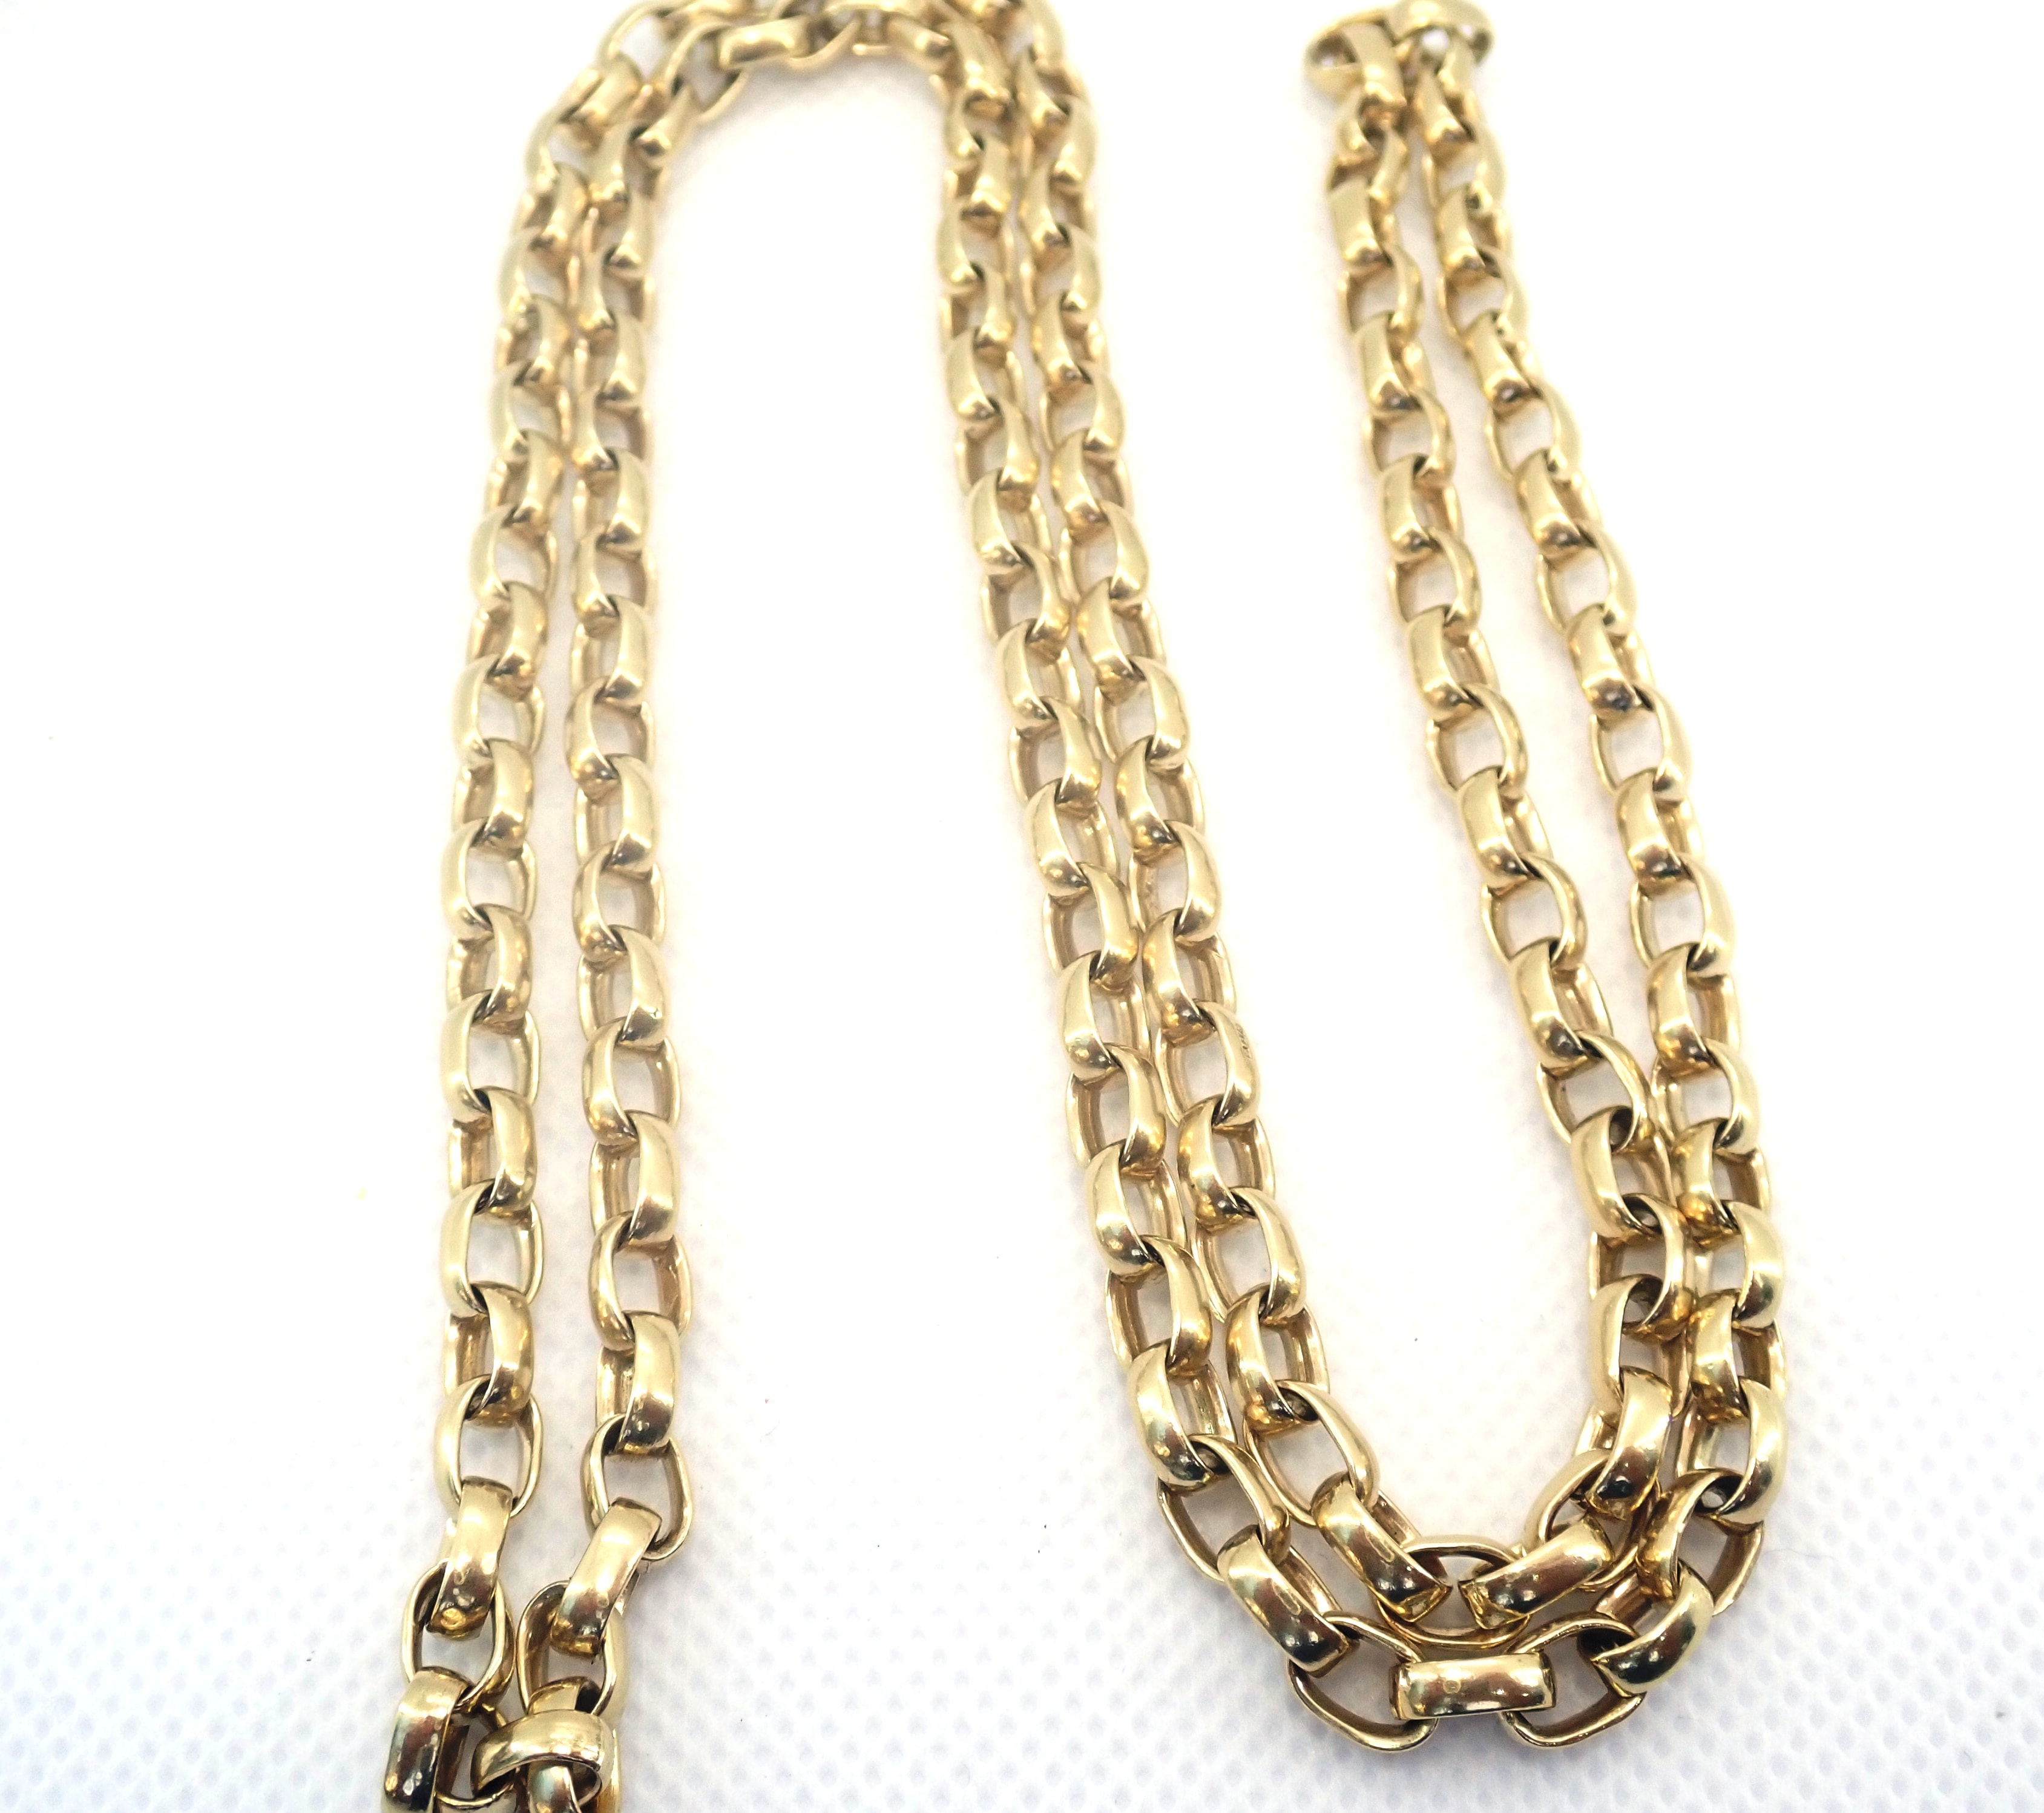 AZZ00711 - 9ct Yellow Gold Belcher Rolo chain 51gms 28 Inch #0201